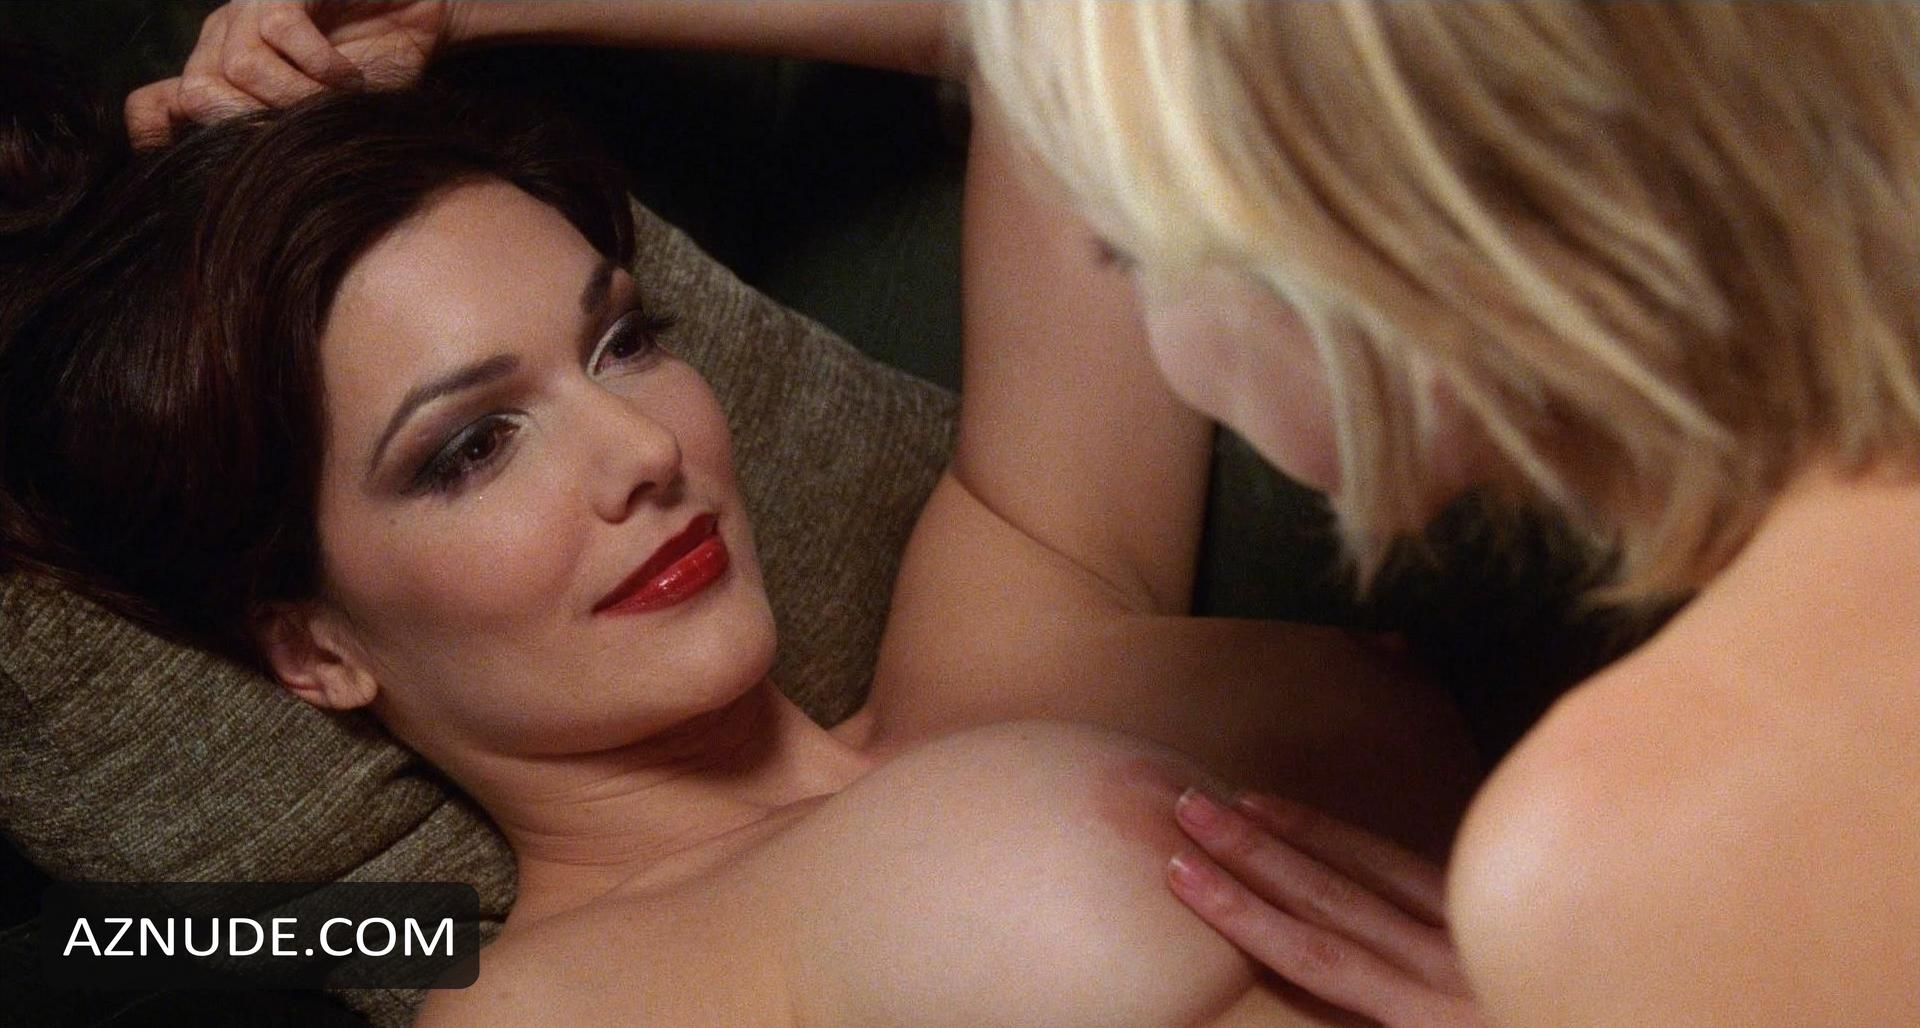 Mulholland drive watch sex scene